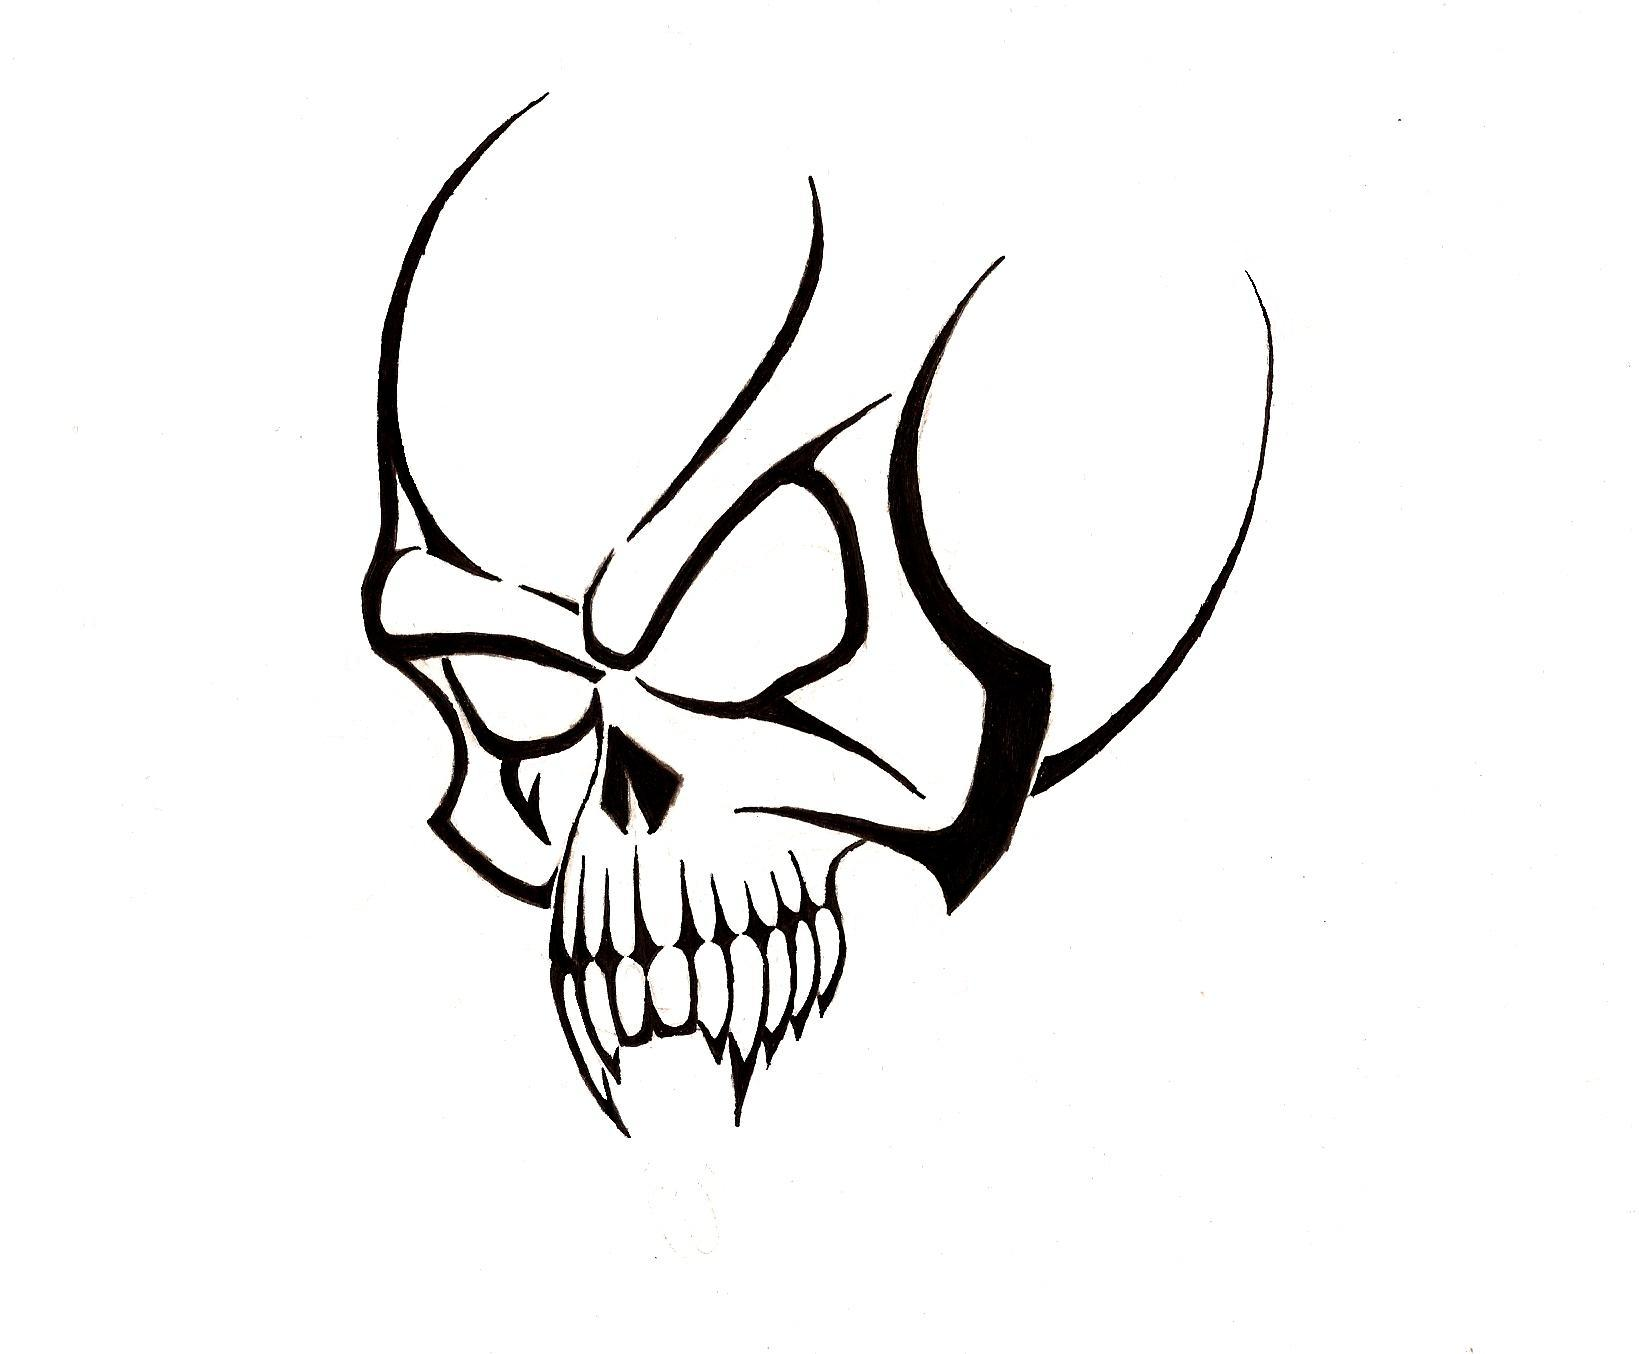 Free tattoo flash art to print Drawing images free download